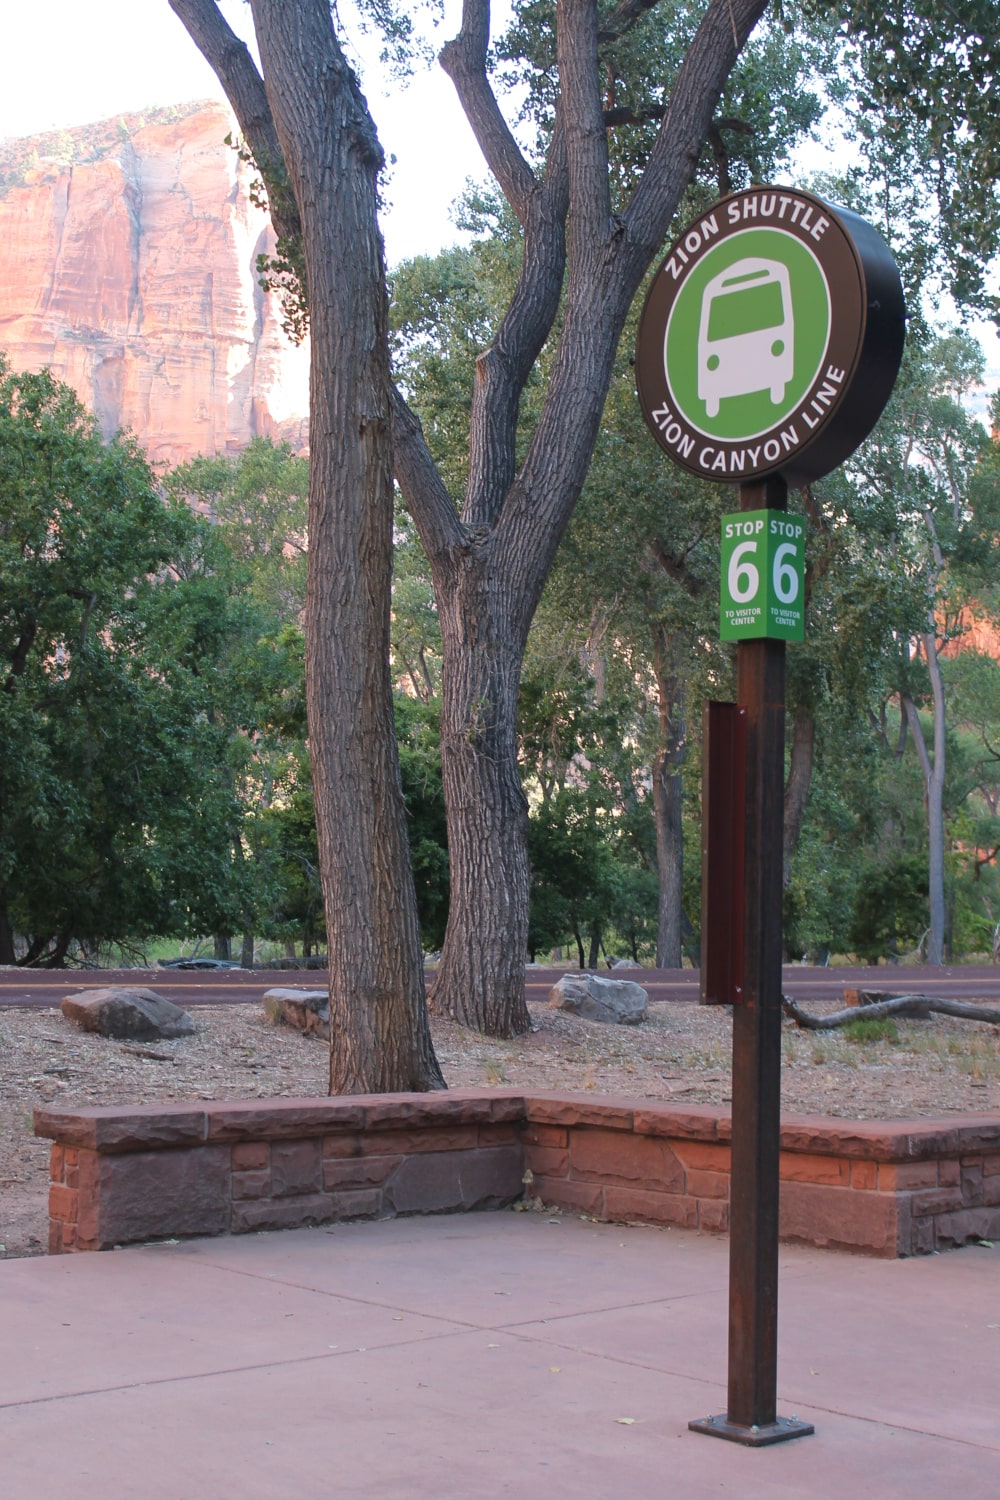 Shuttlebus stop in Zion